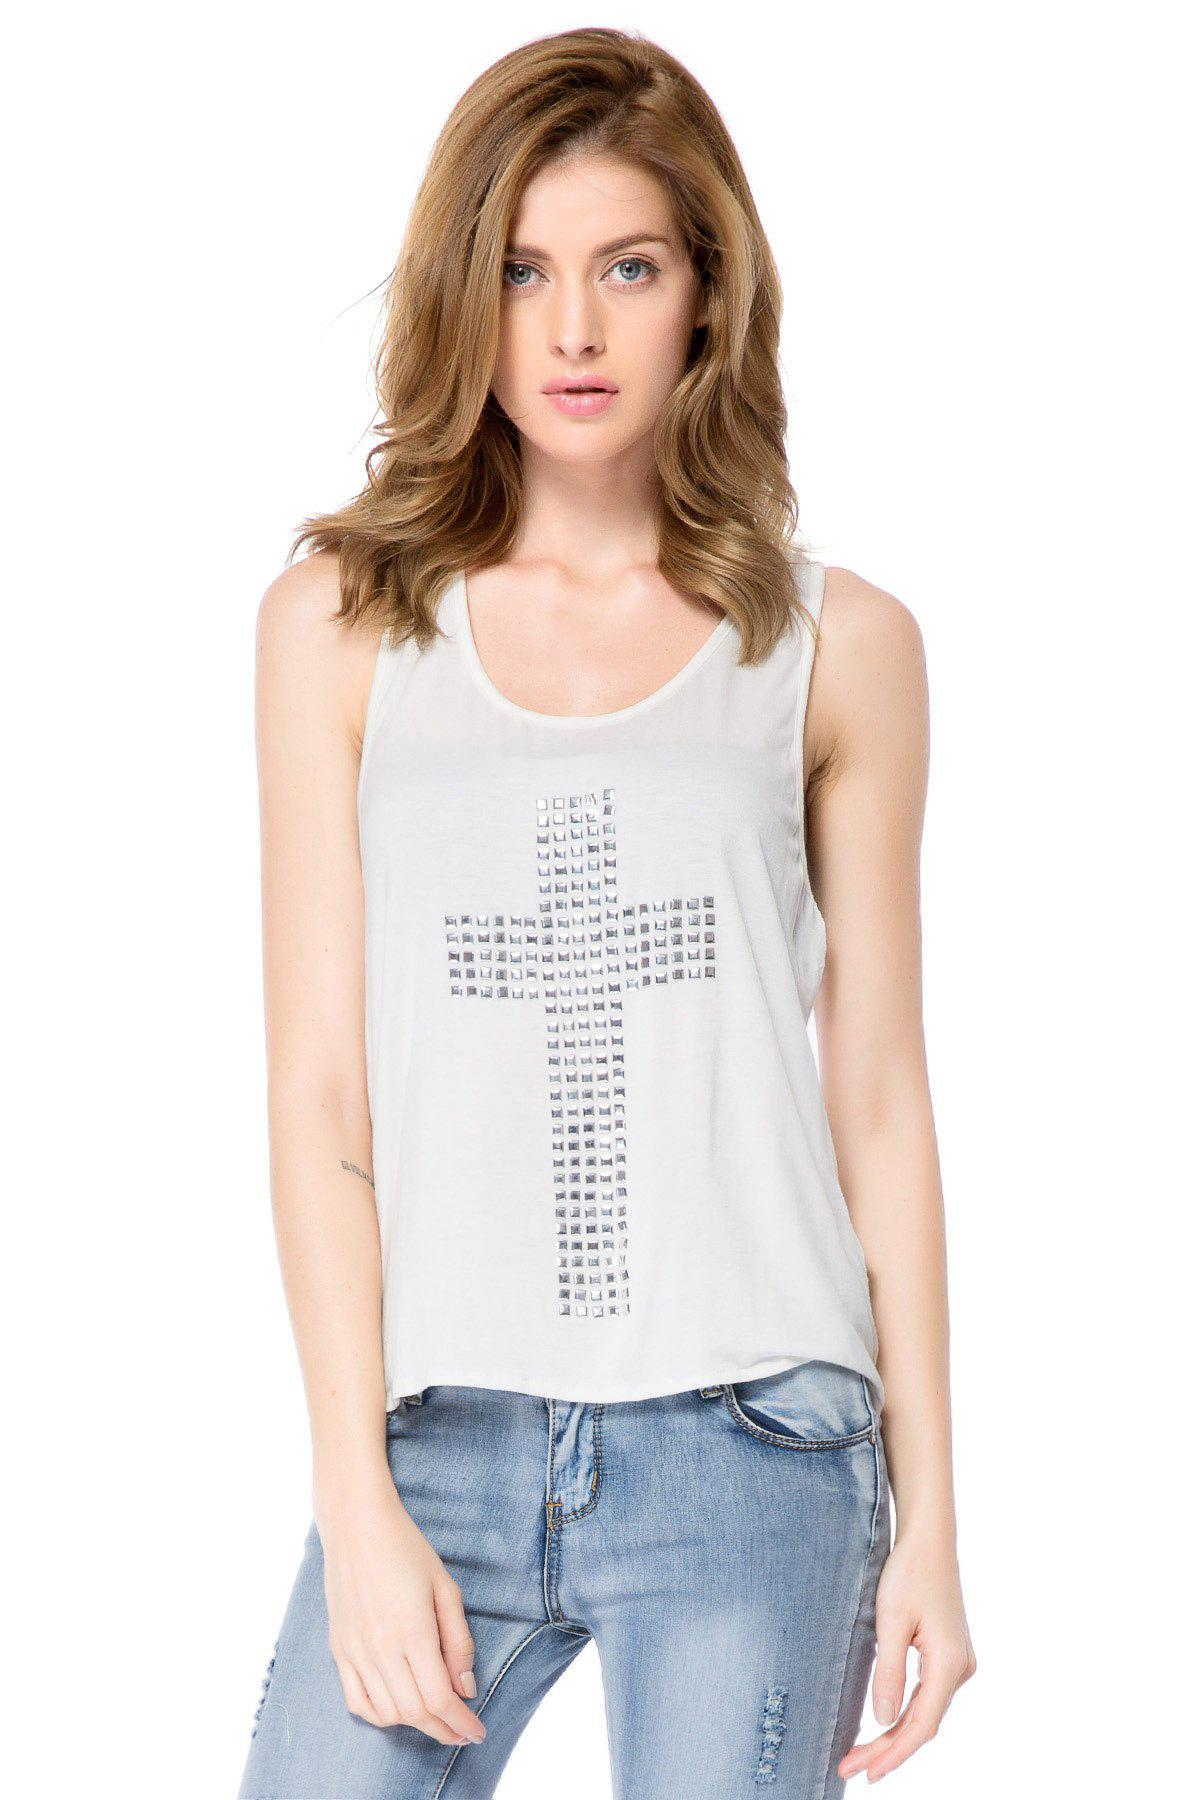 Stylish U Neck Rhinestones Cross Studded Tank Top For Women - WHITE XL